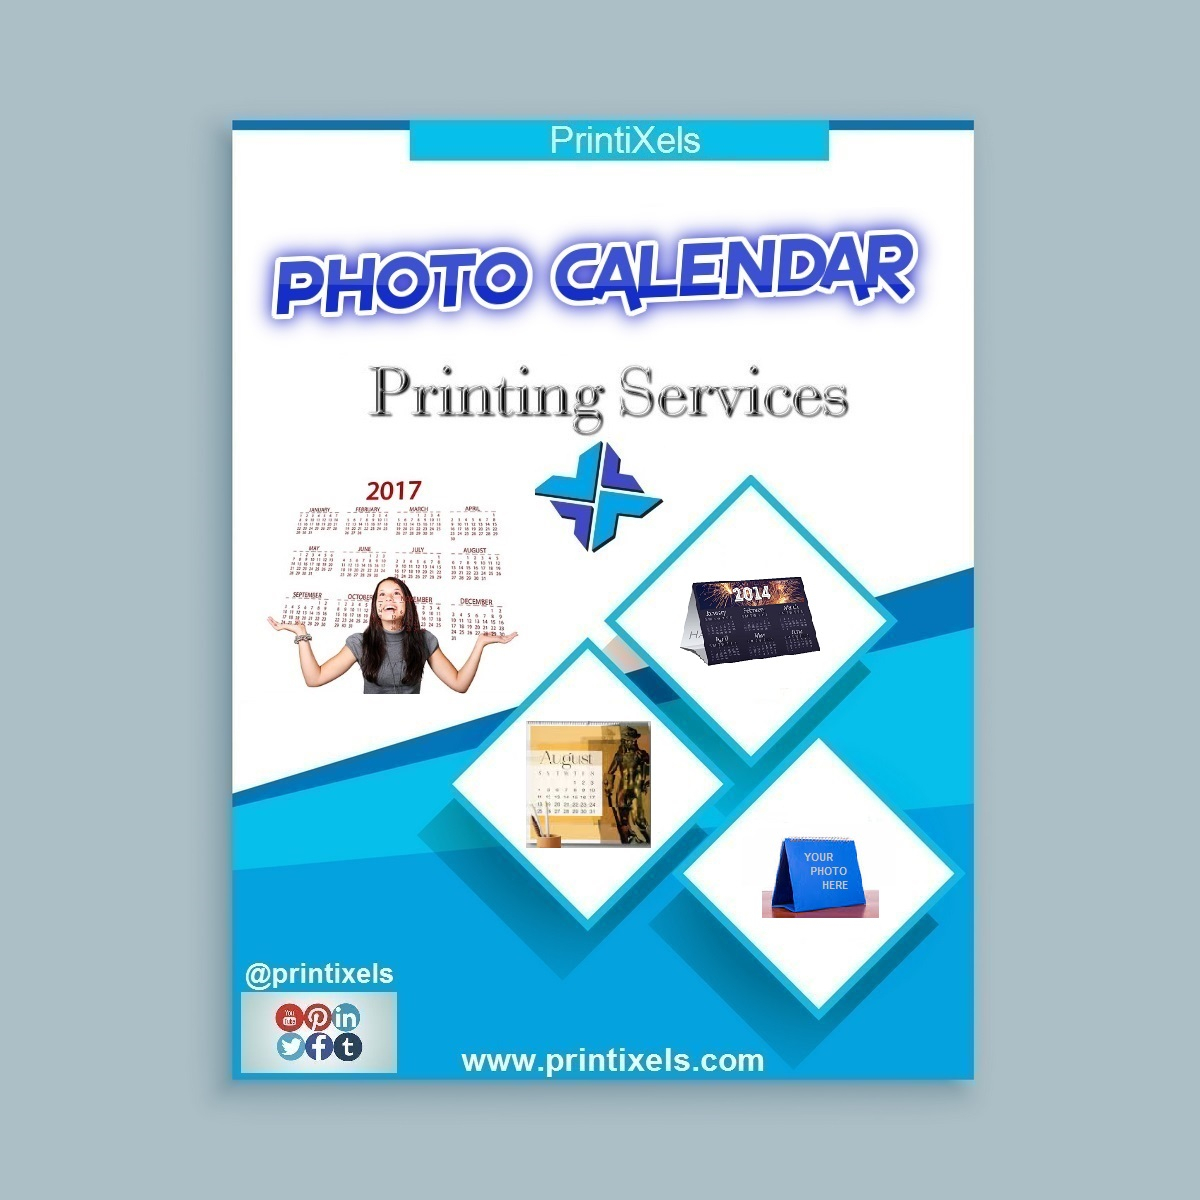 Photo Calendar Printing Services | Printixels™ Philippines pertaining to Personalized Calendar Maker Philippines